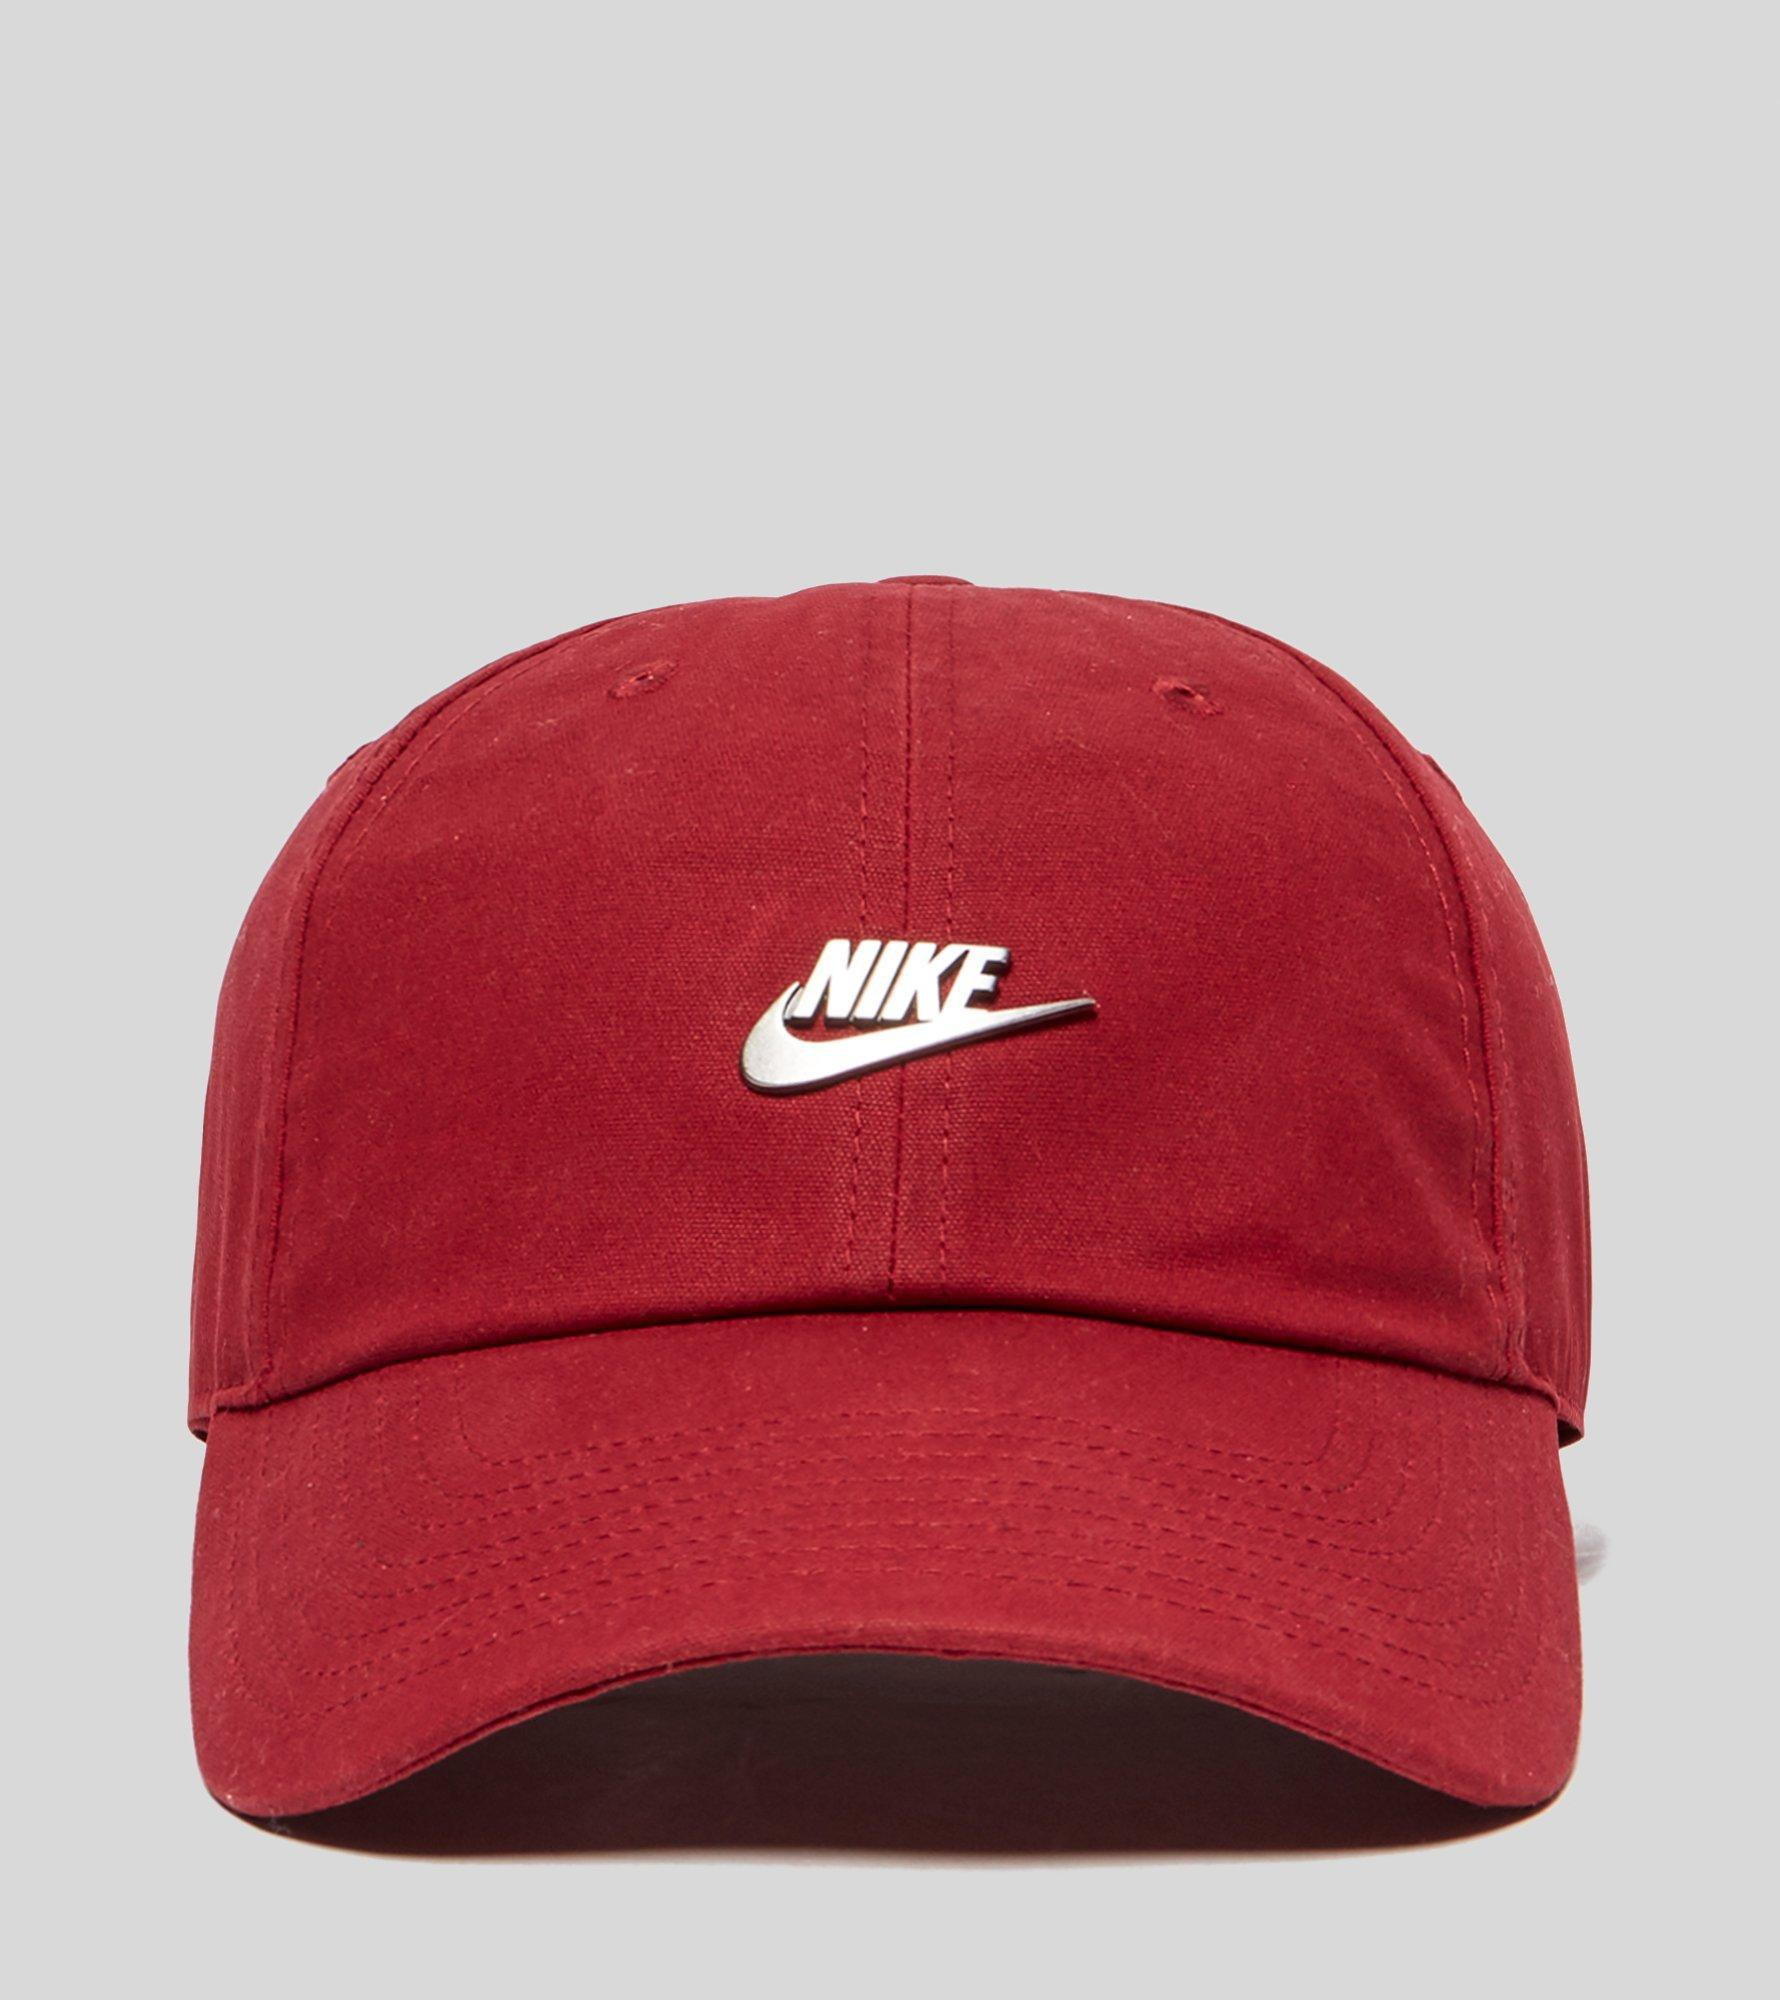 6c48114ac04 Lyst - Nike Hook Cap in Red for Men